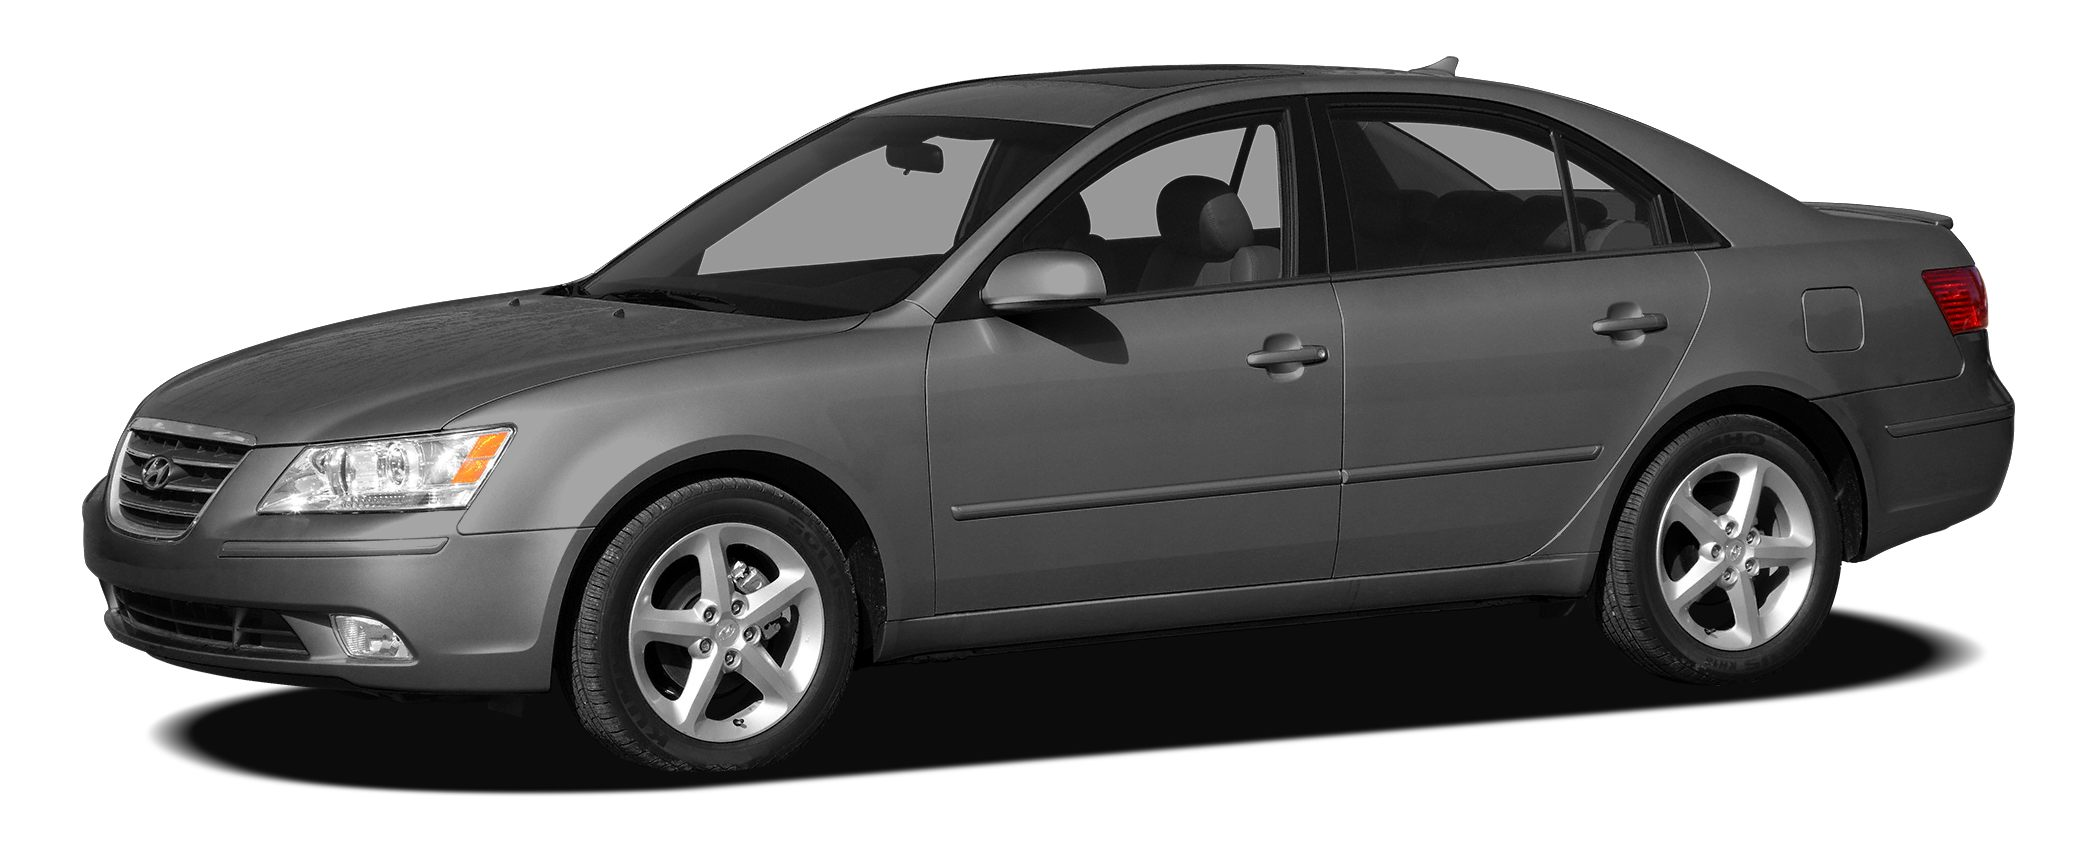 2010 Hyundai Sonata GLS Lifetime Engine Warranty at NO CHARGE on all pre-owned vehicles Courtesy A